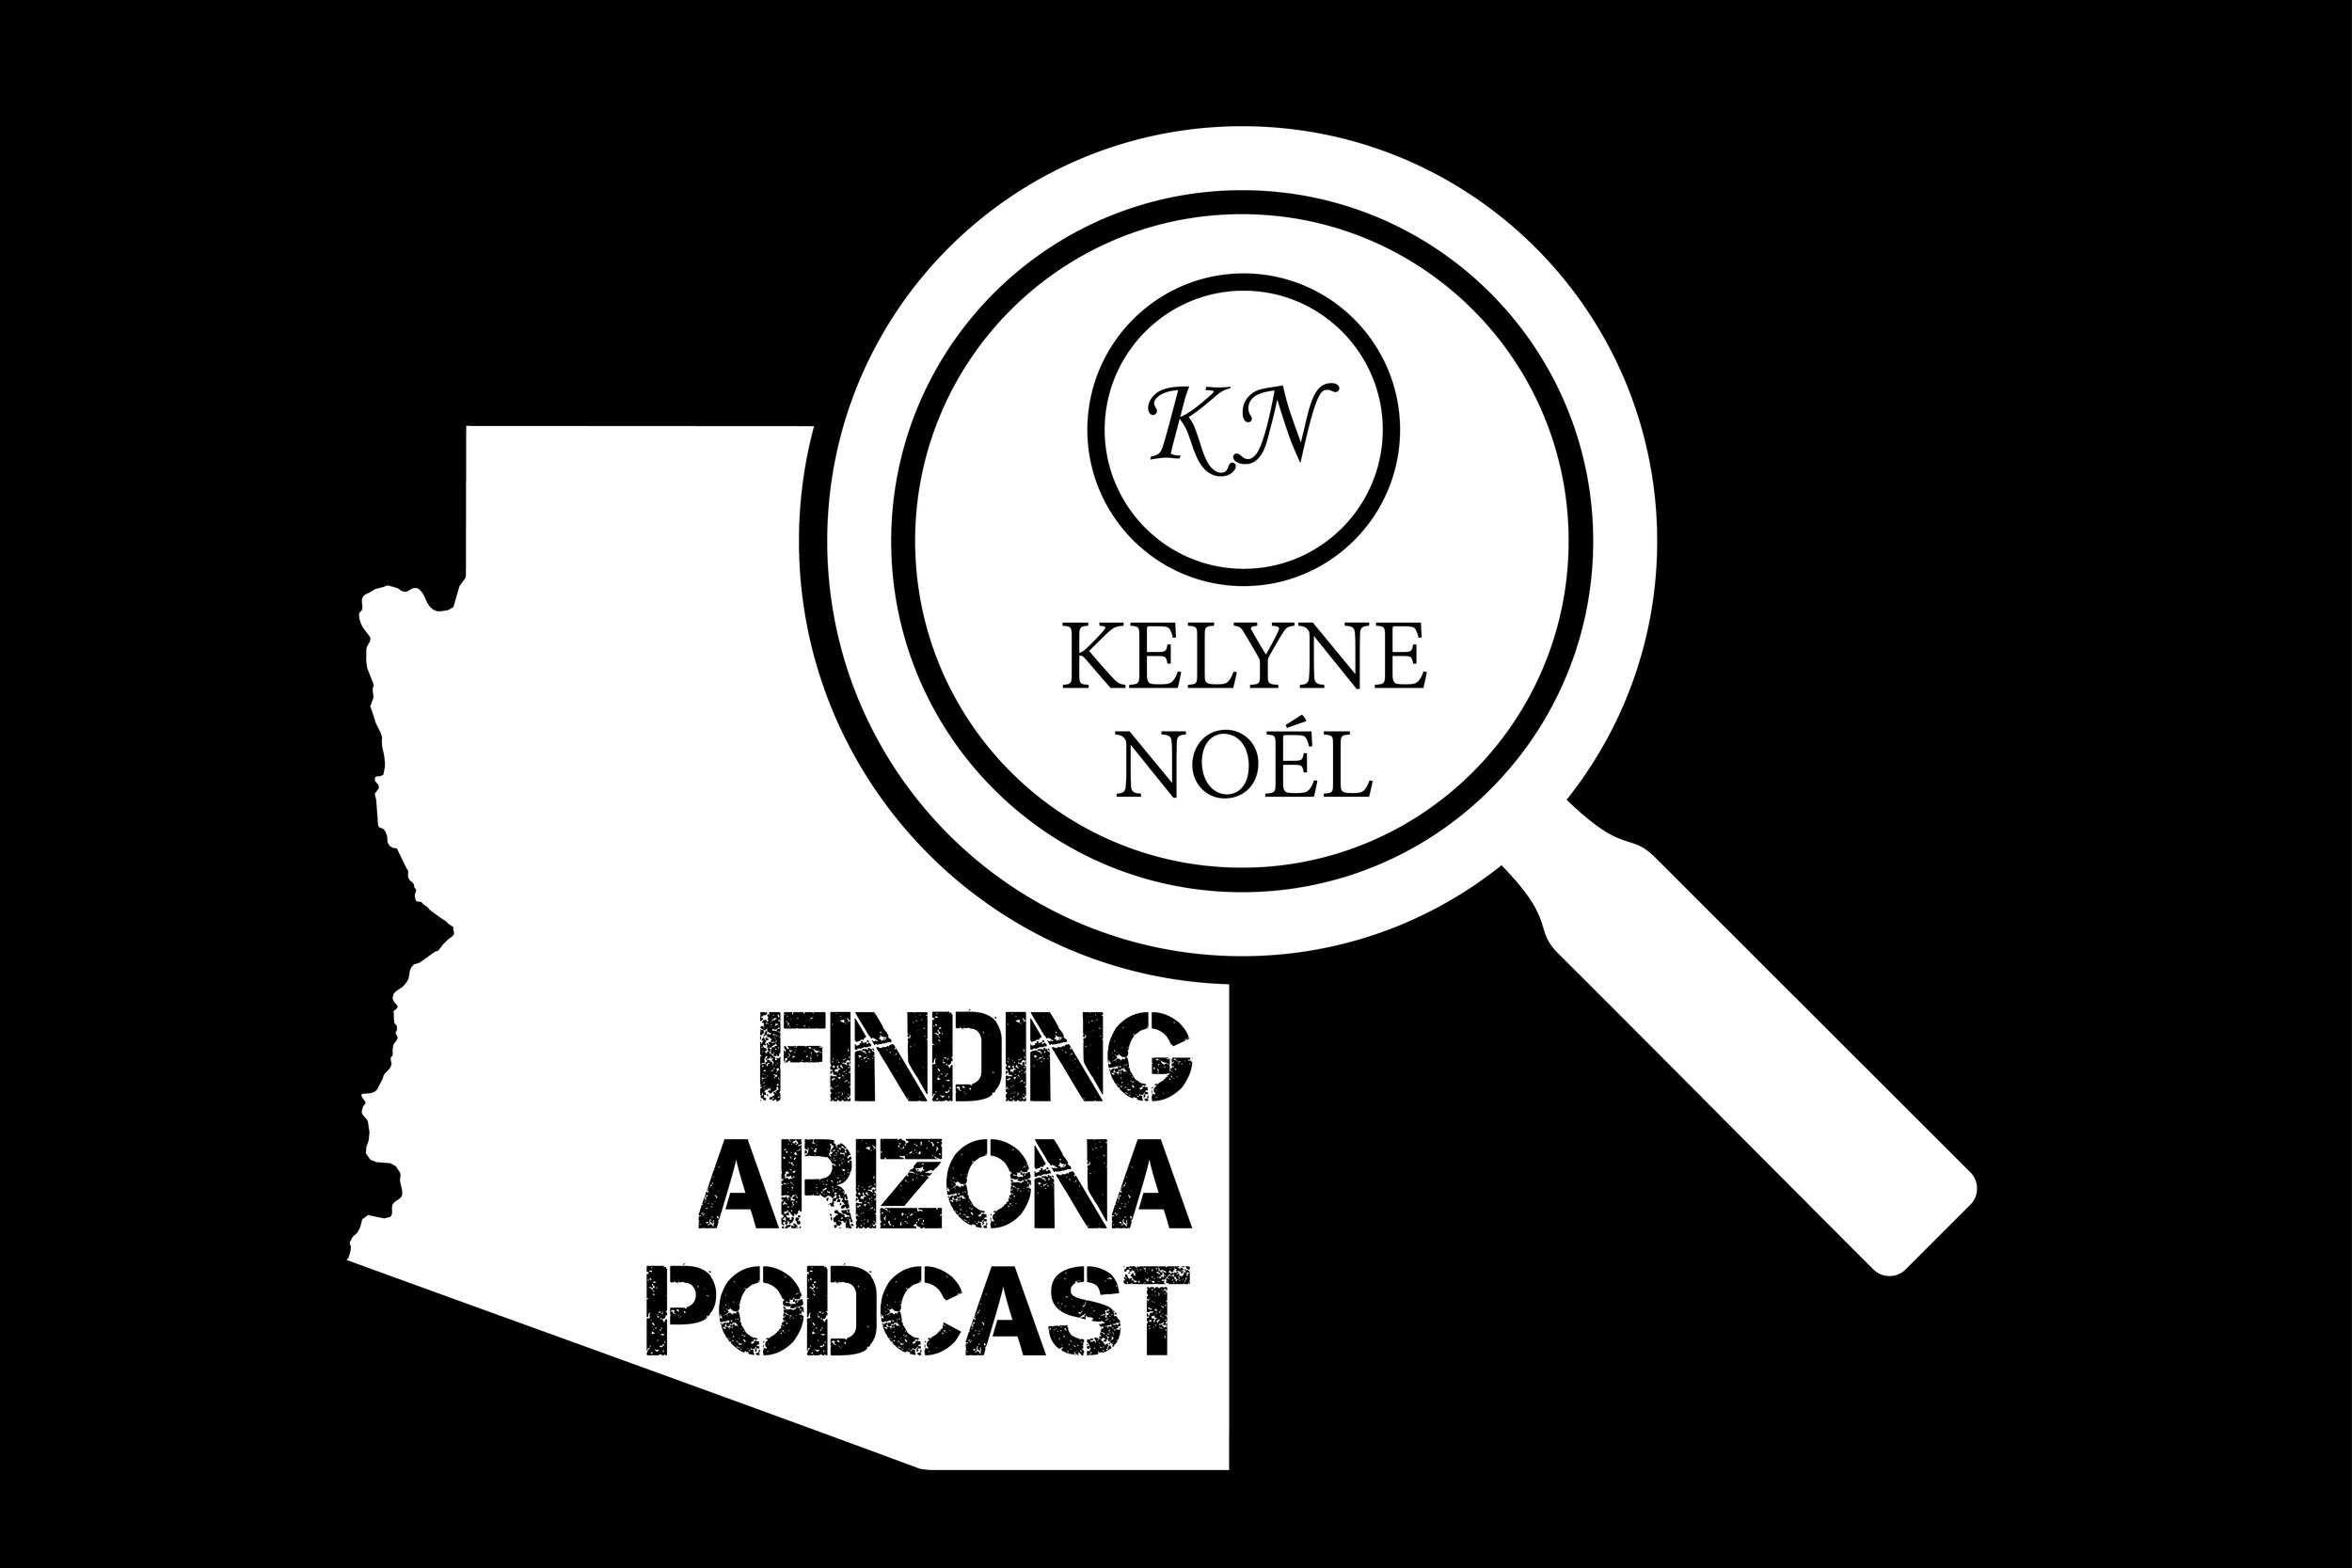 PodCastLogo-Kelyne-06.jpg